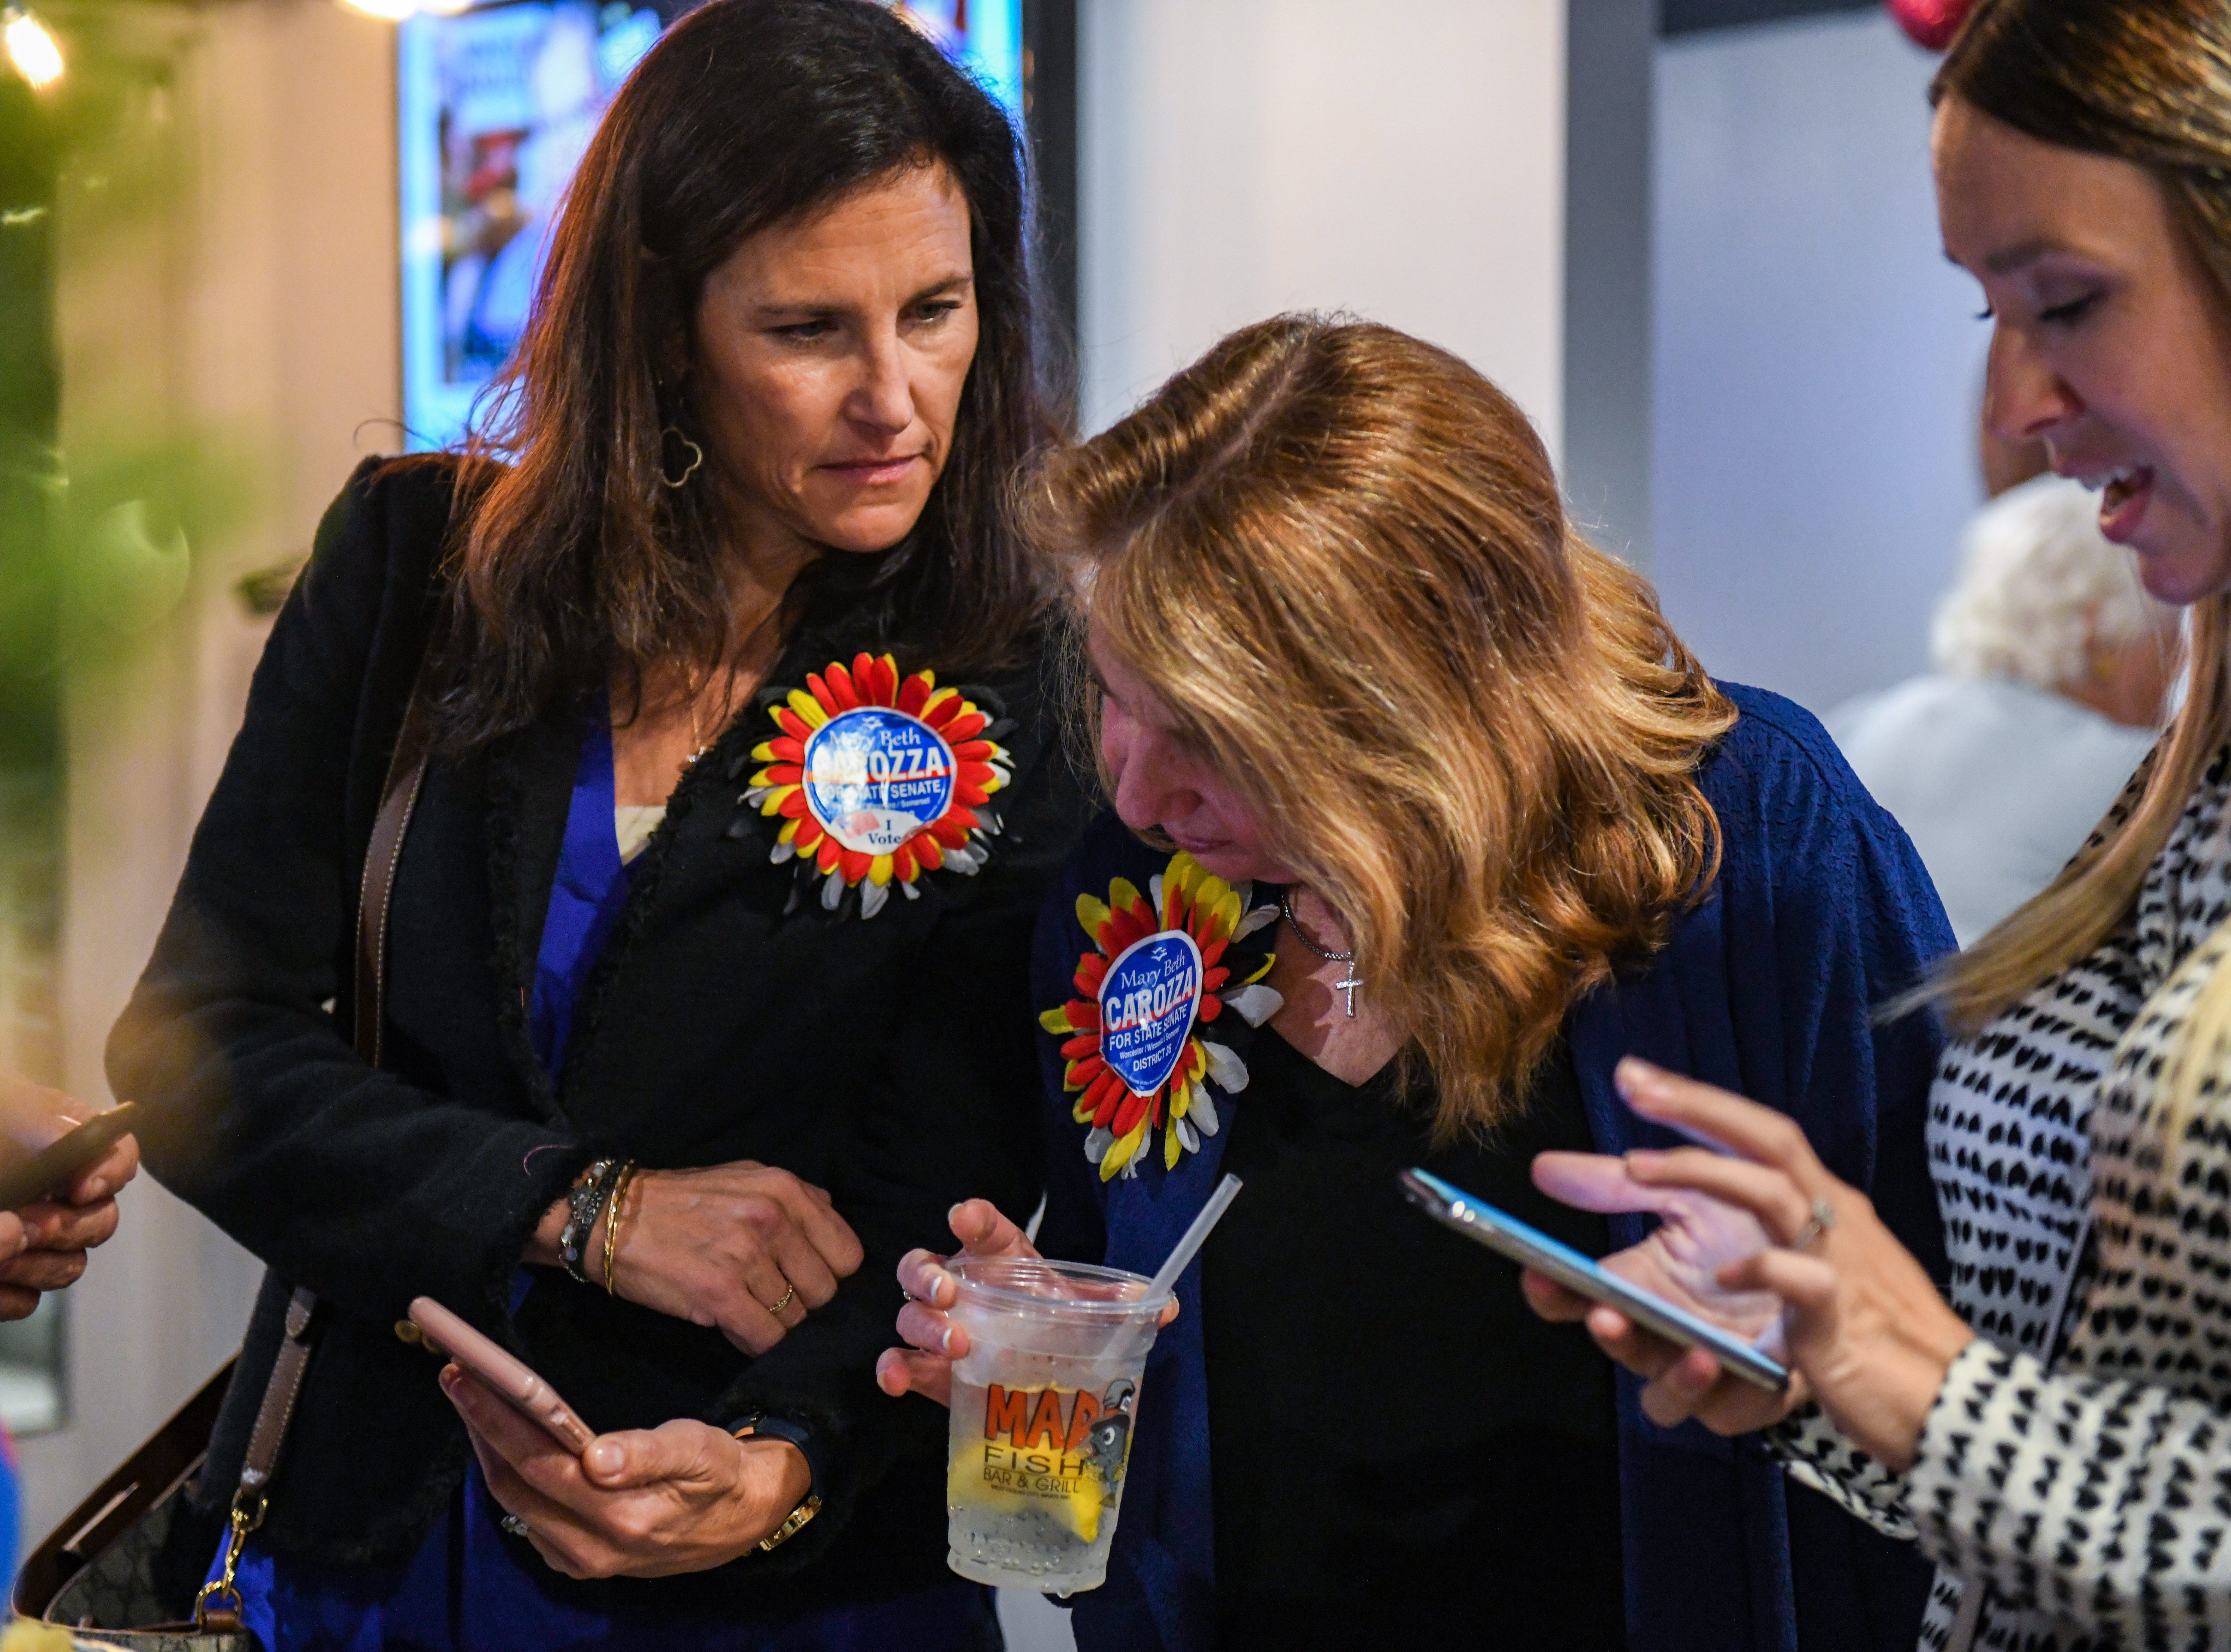 Republican Mary Beth Carozza checks results at her Ocean City watch party on Tuesday, Nov 6, 2018. Excitement grew throughout the night as Carozza was elected the new Maryland state senator in District 38, unseating incumbent Democrat Jim Mathias.